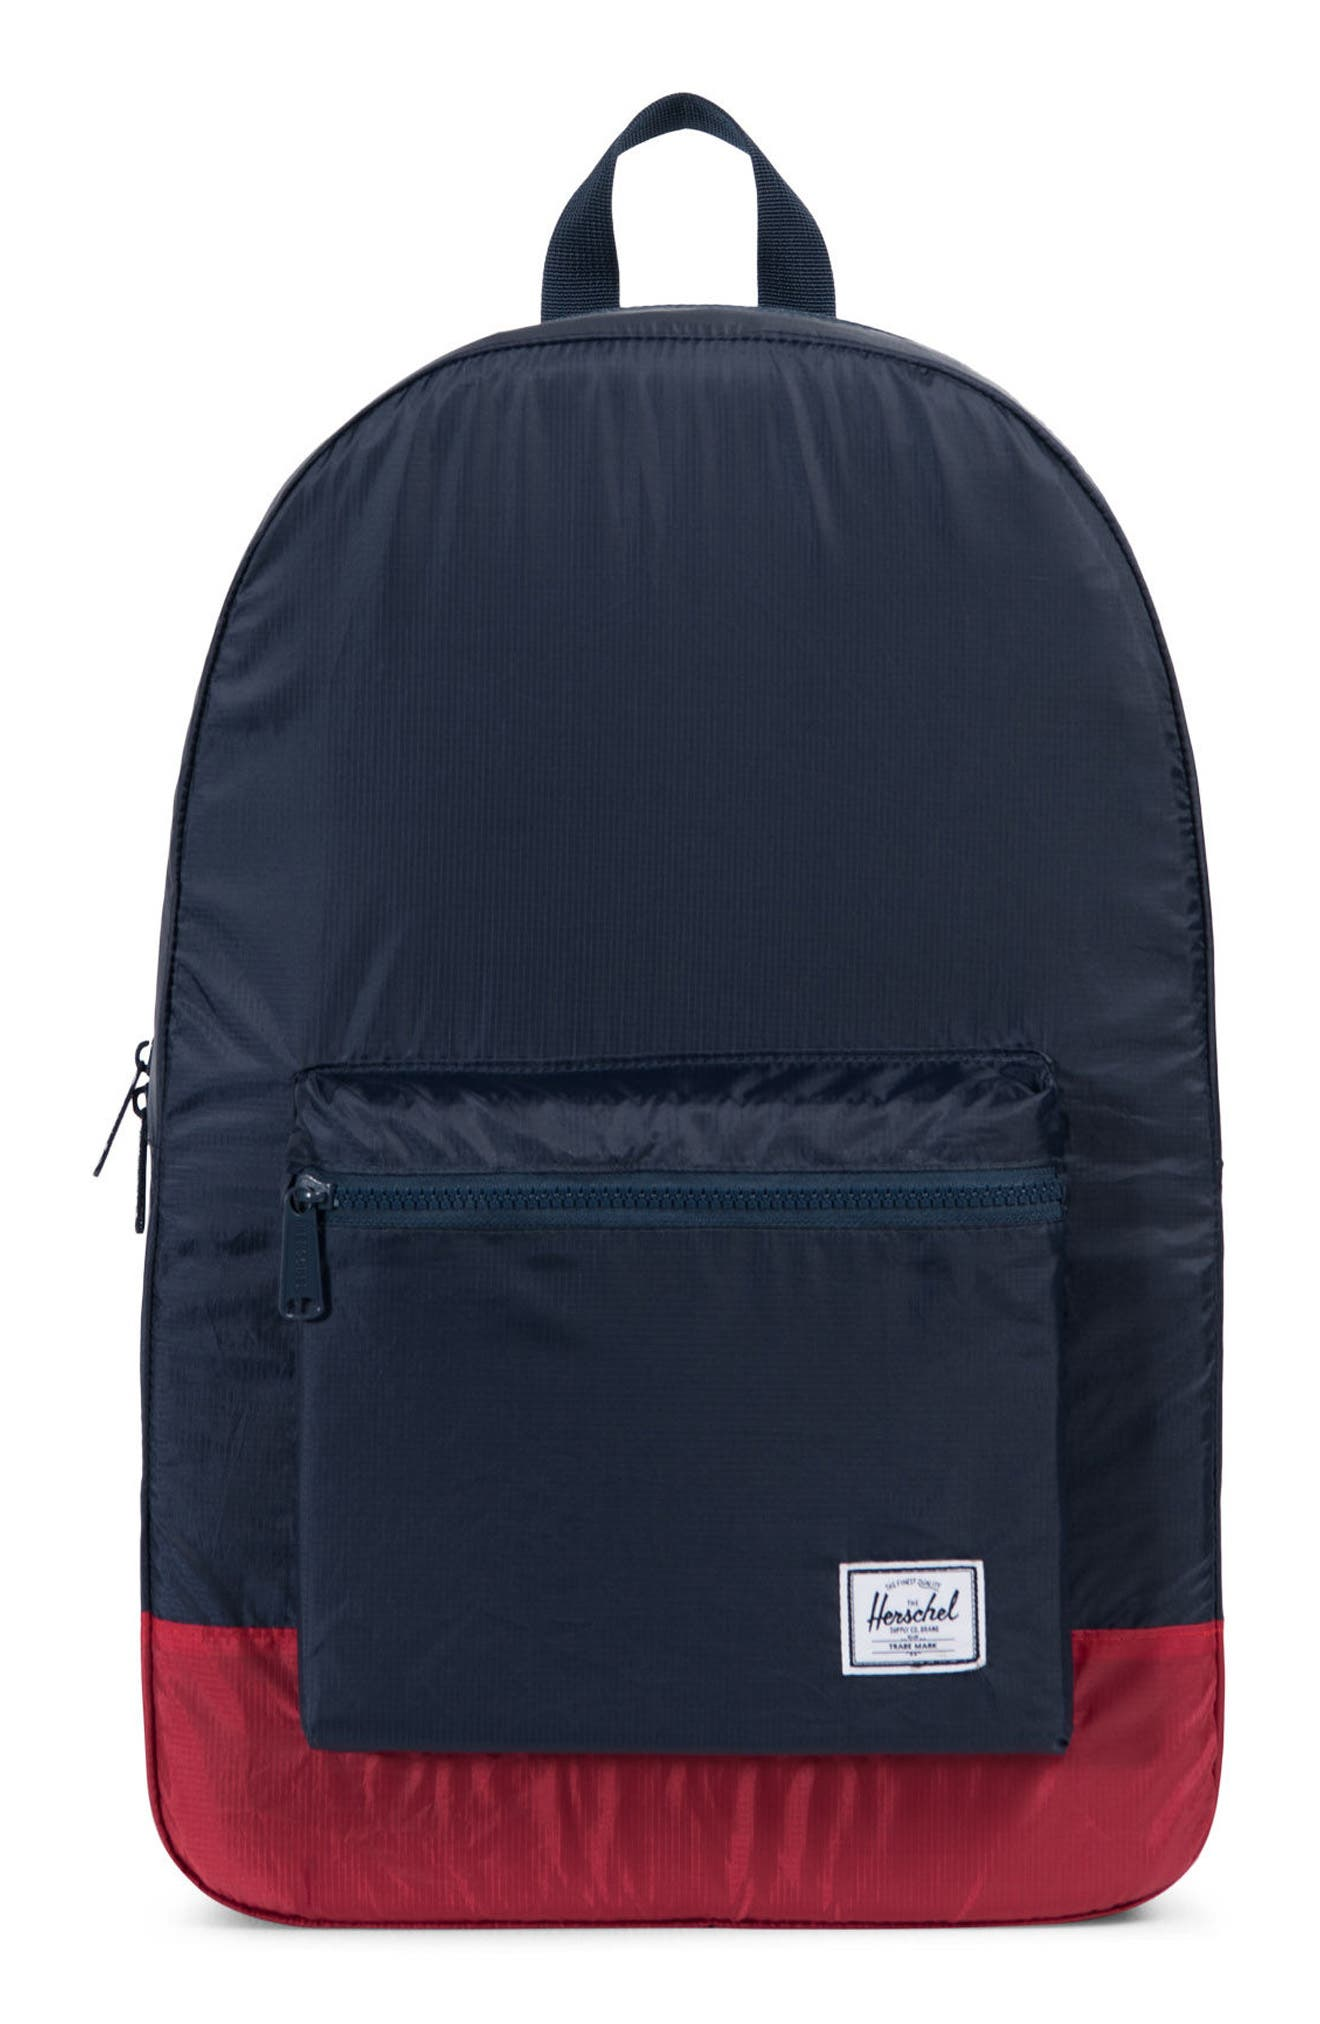 Packable Daypack,                         Main,                         color, Navy/ Red